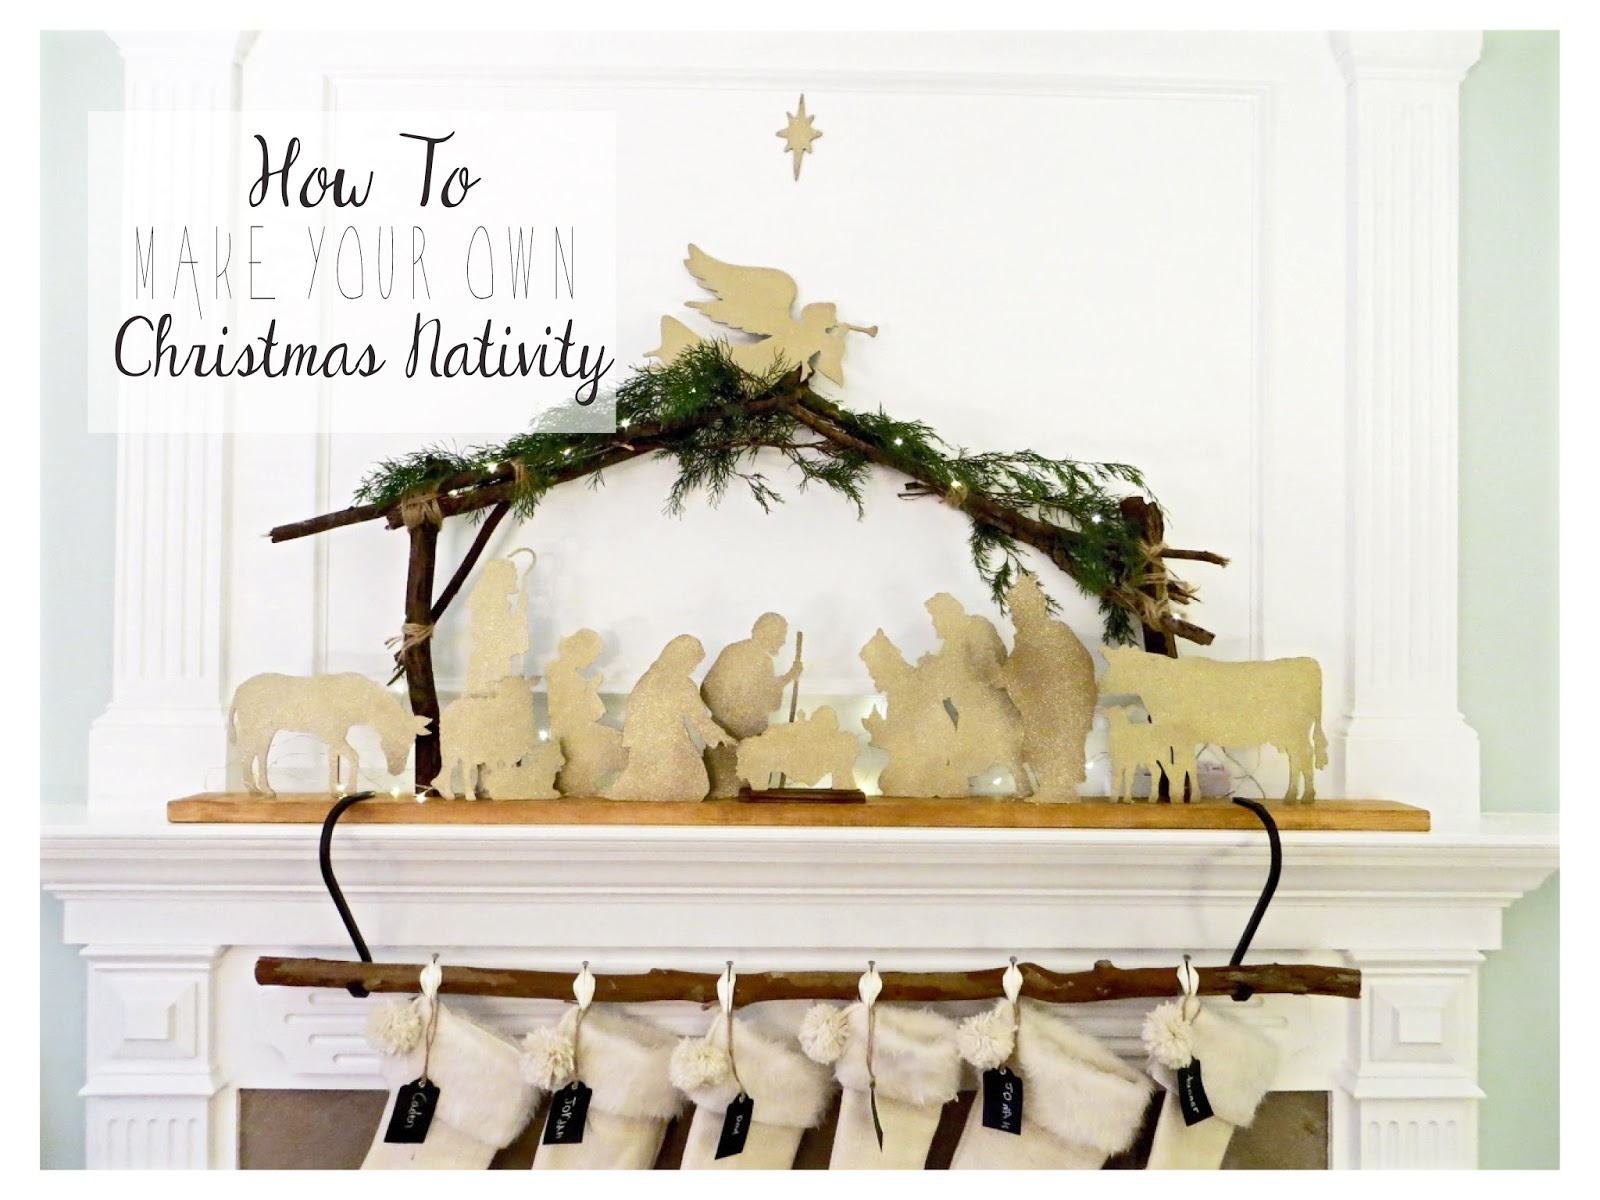 The Project Lady Diy Tutorial For Making A Silhouette Christmas